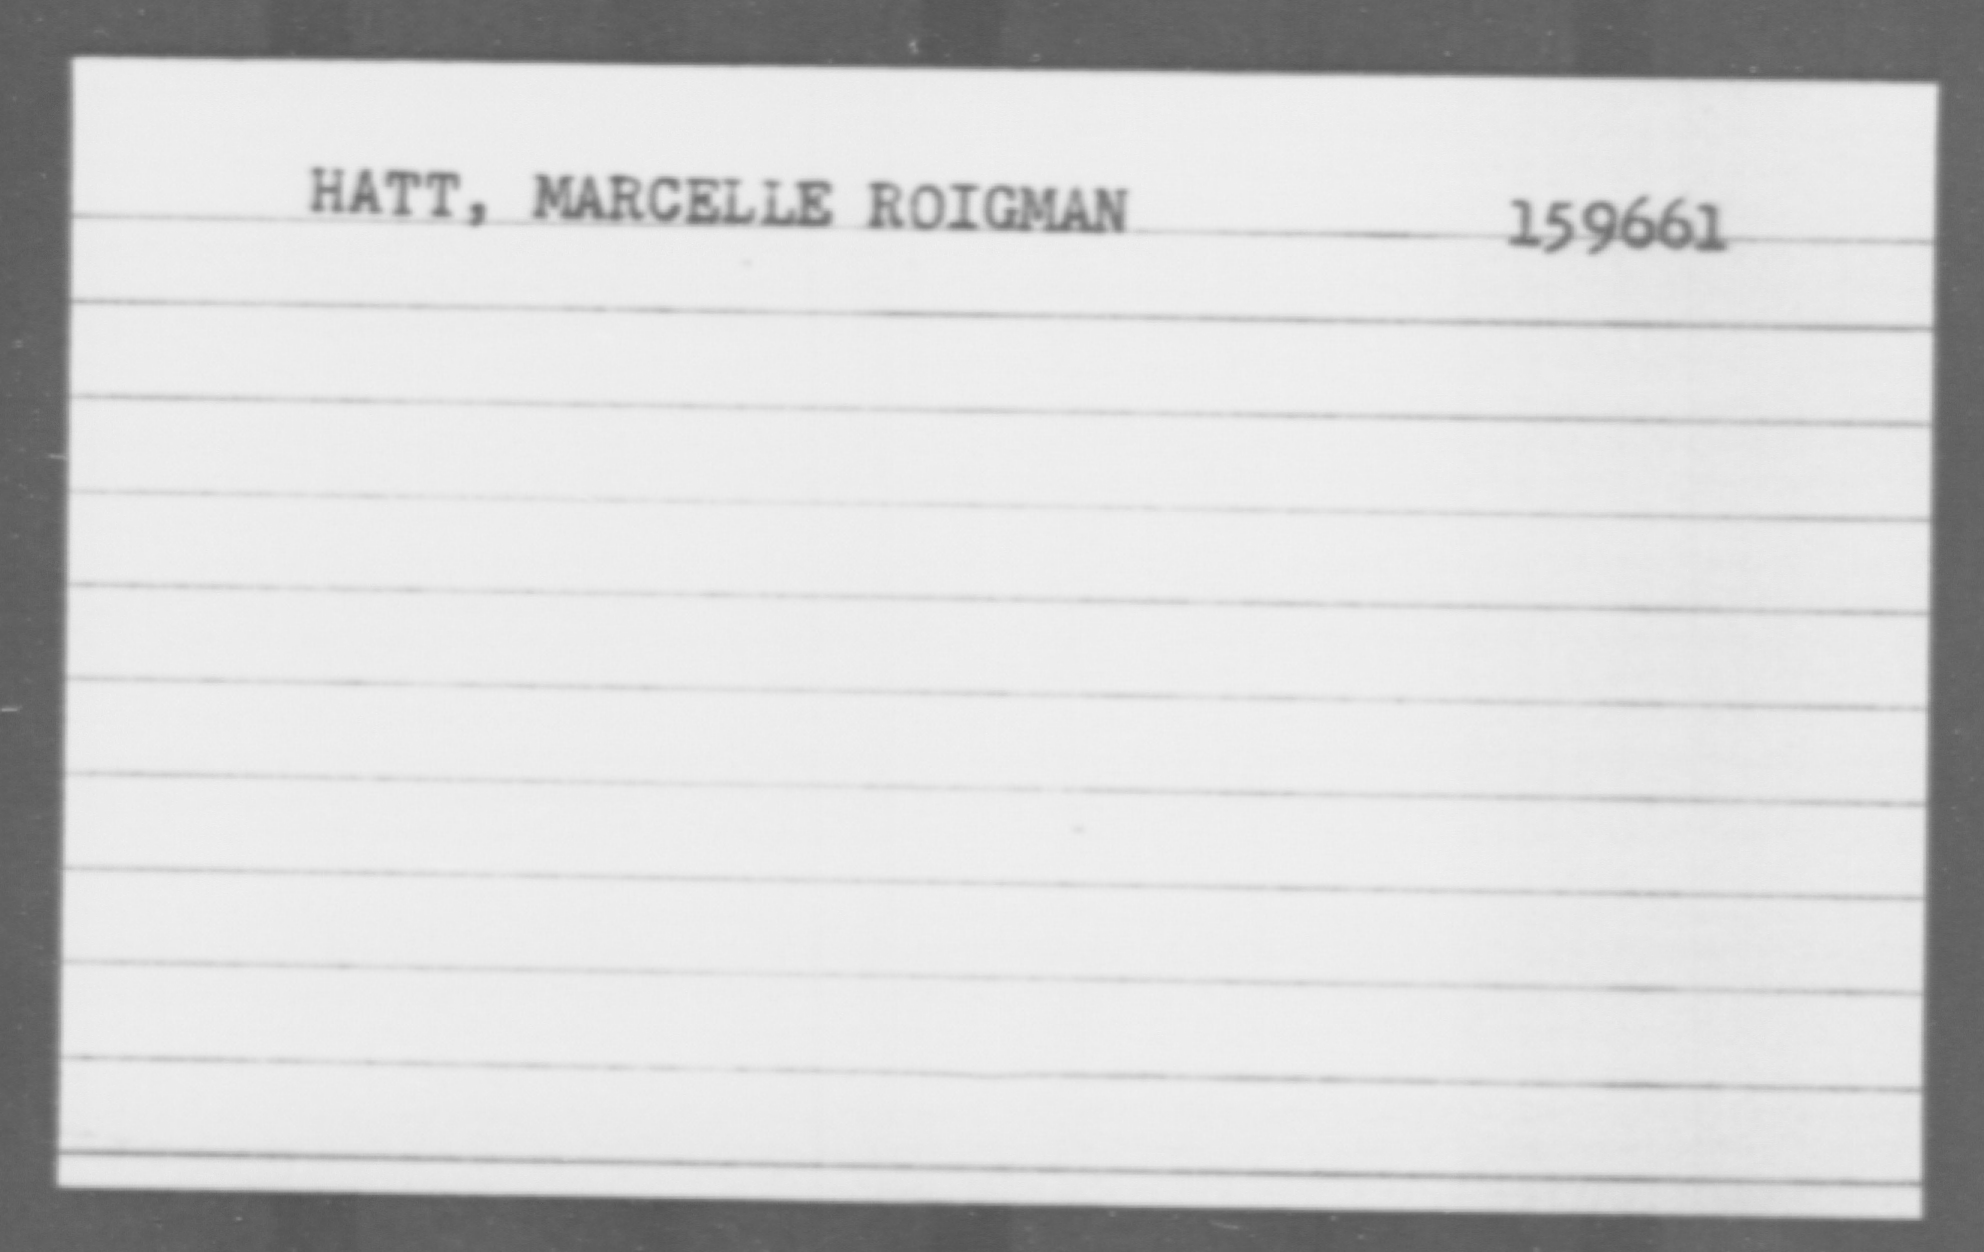 Hatt, Marcelle Roigman - Born: [BLANK], Naturalized: [BLANK]